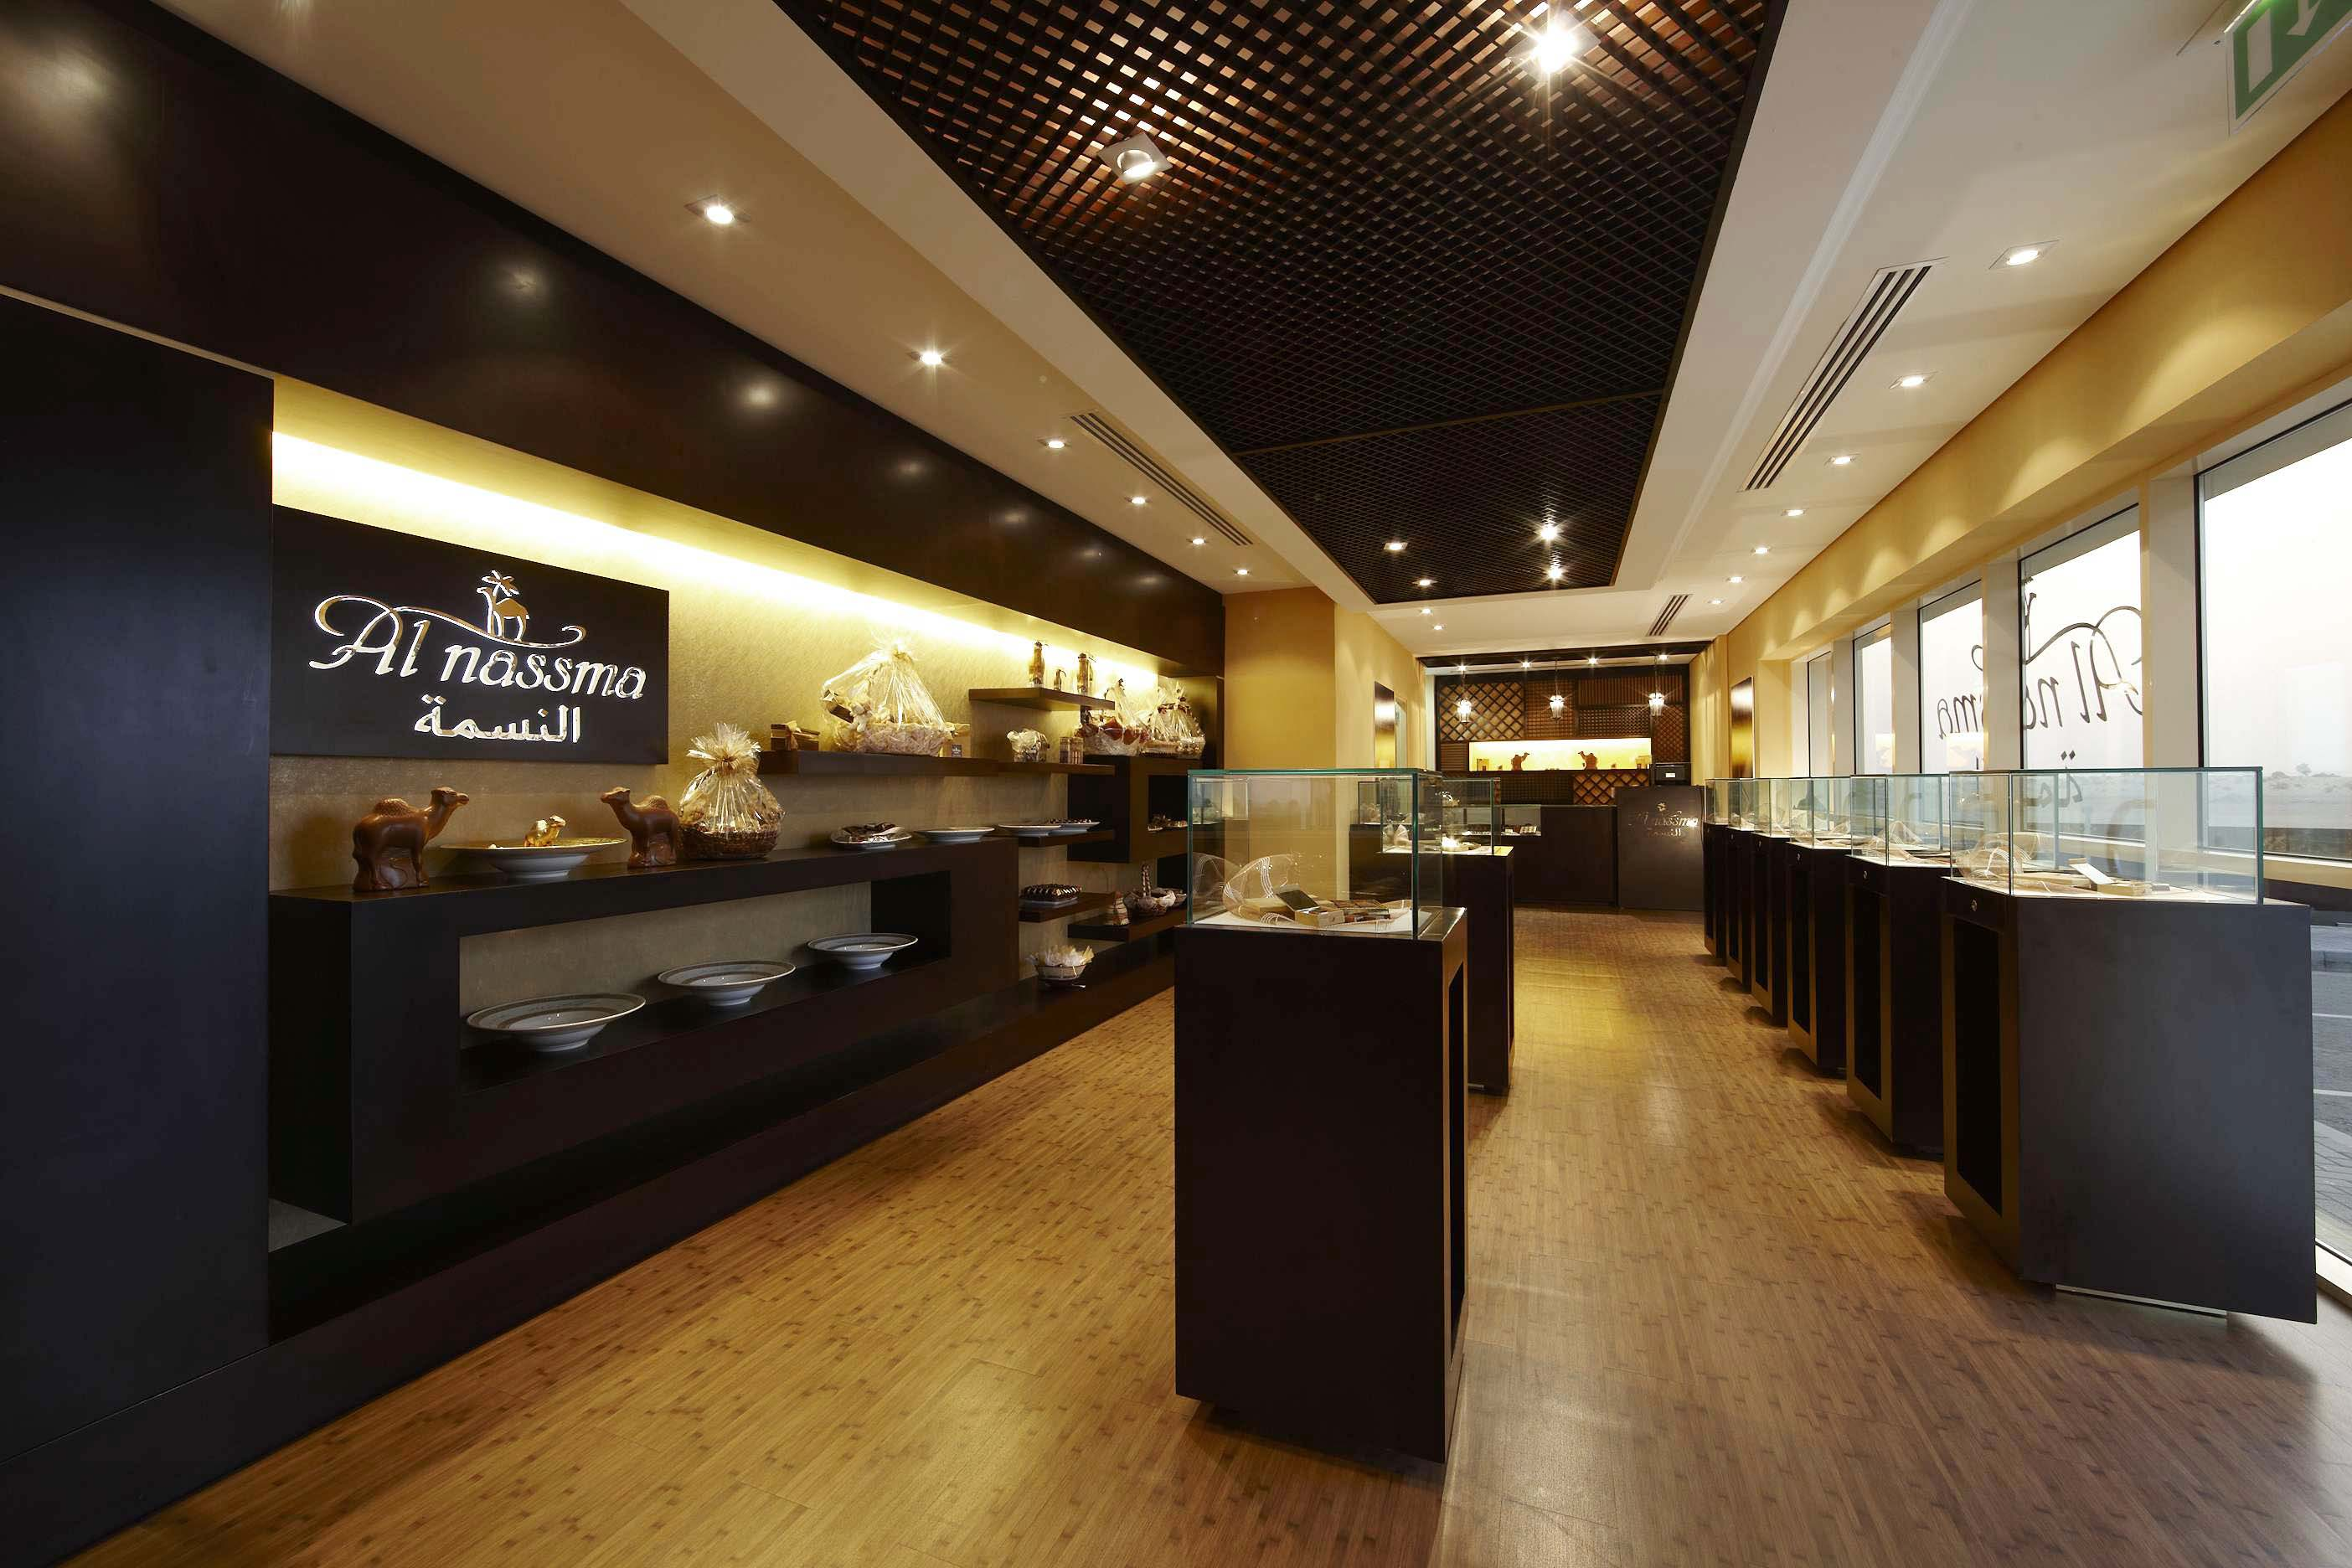 Al Nassma Shop, Dubai UAE